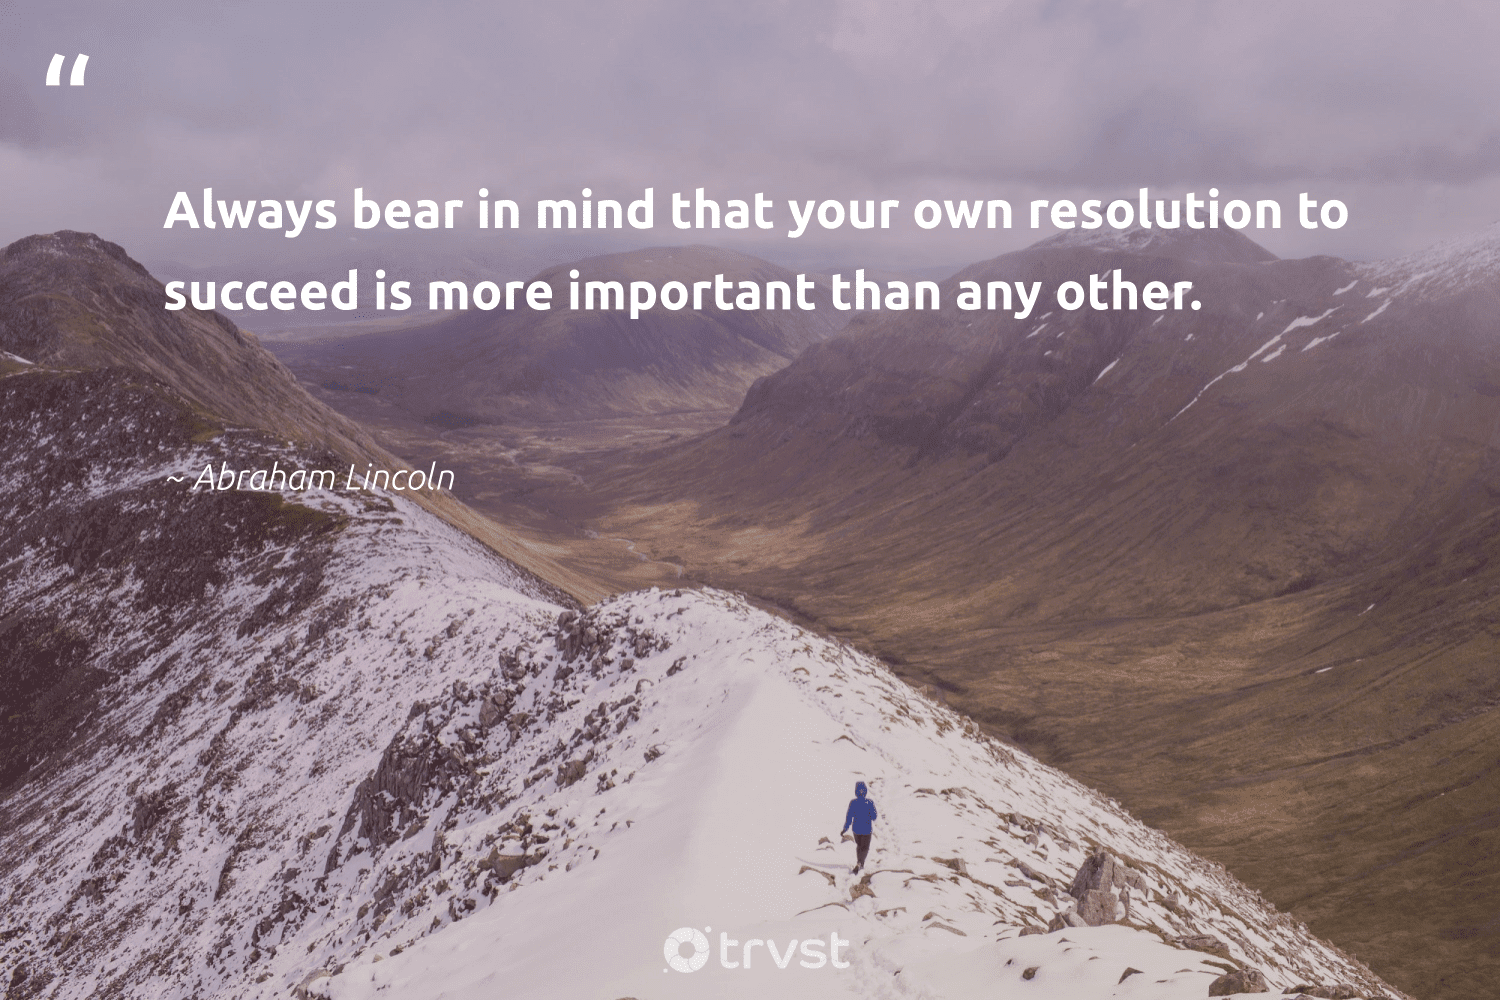 """""""Always bear in mind that your own resolution to succeed is more important than any other.""""  - Abraham Lincoln #trvst #quotes #bear #acheivement #ecoconscious #suceeed #thinkgreen #successful #changetheworld #deliver #dosomething #success"""